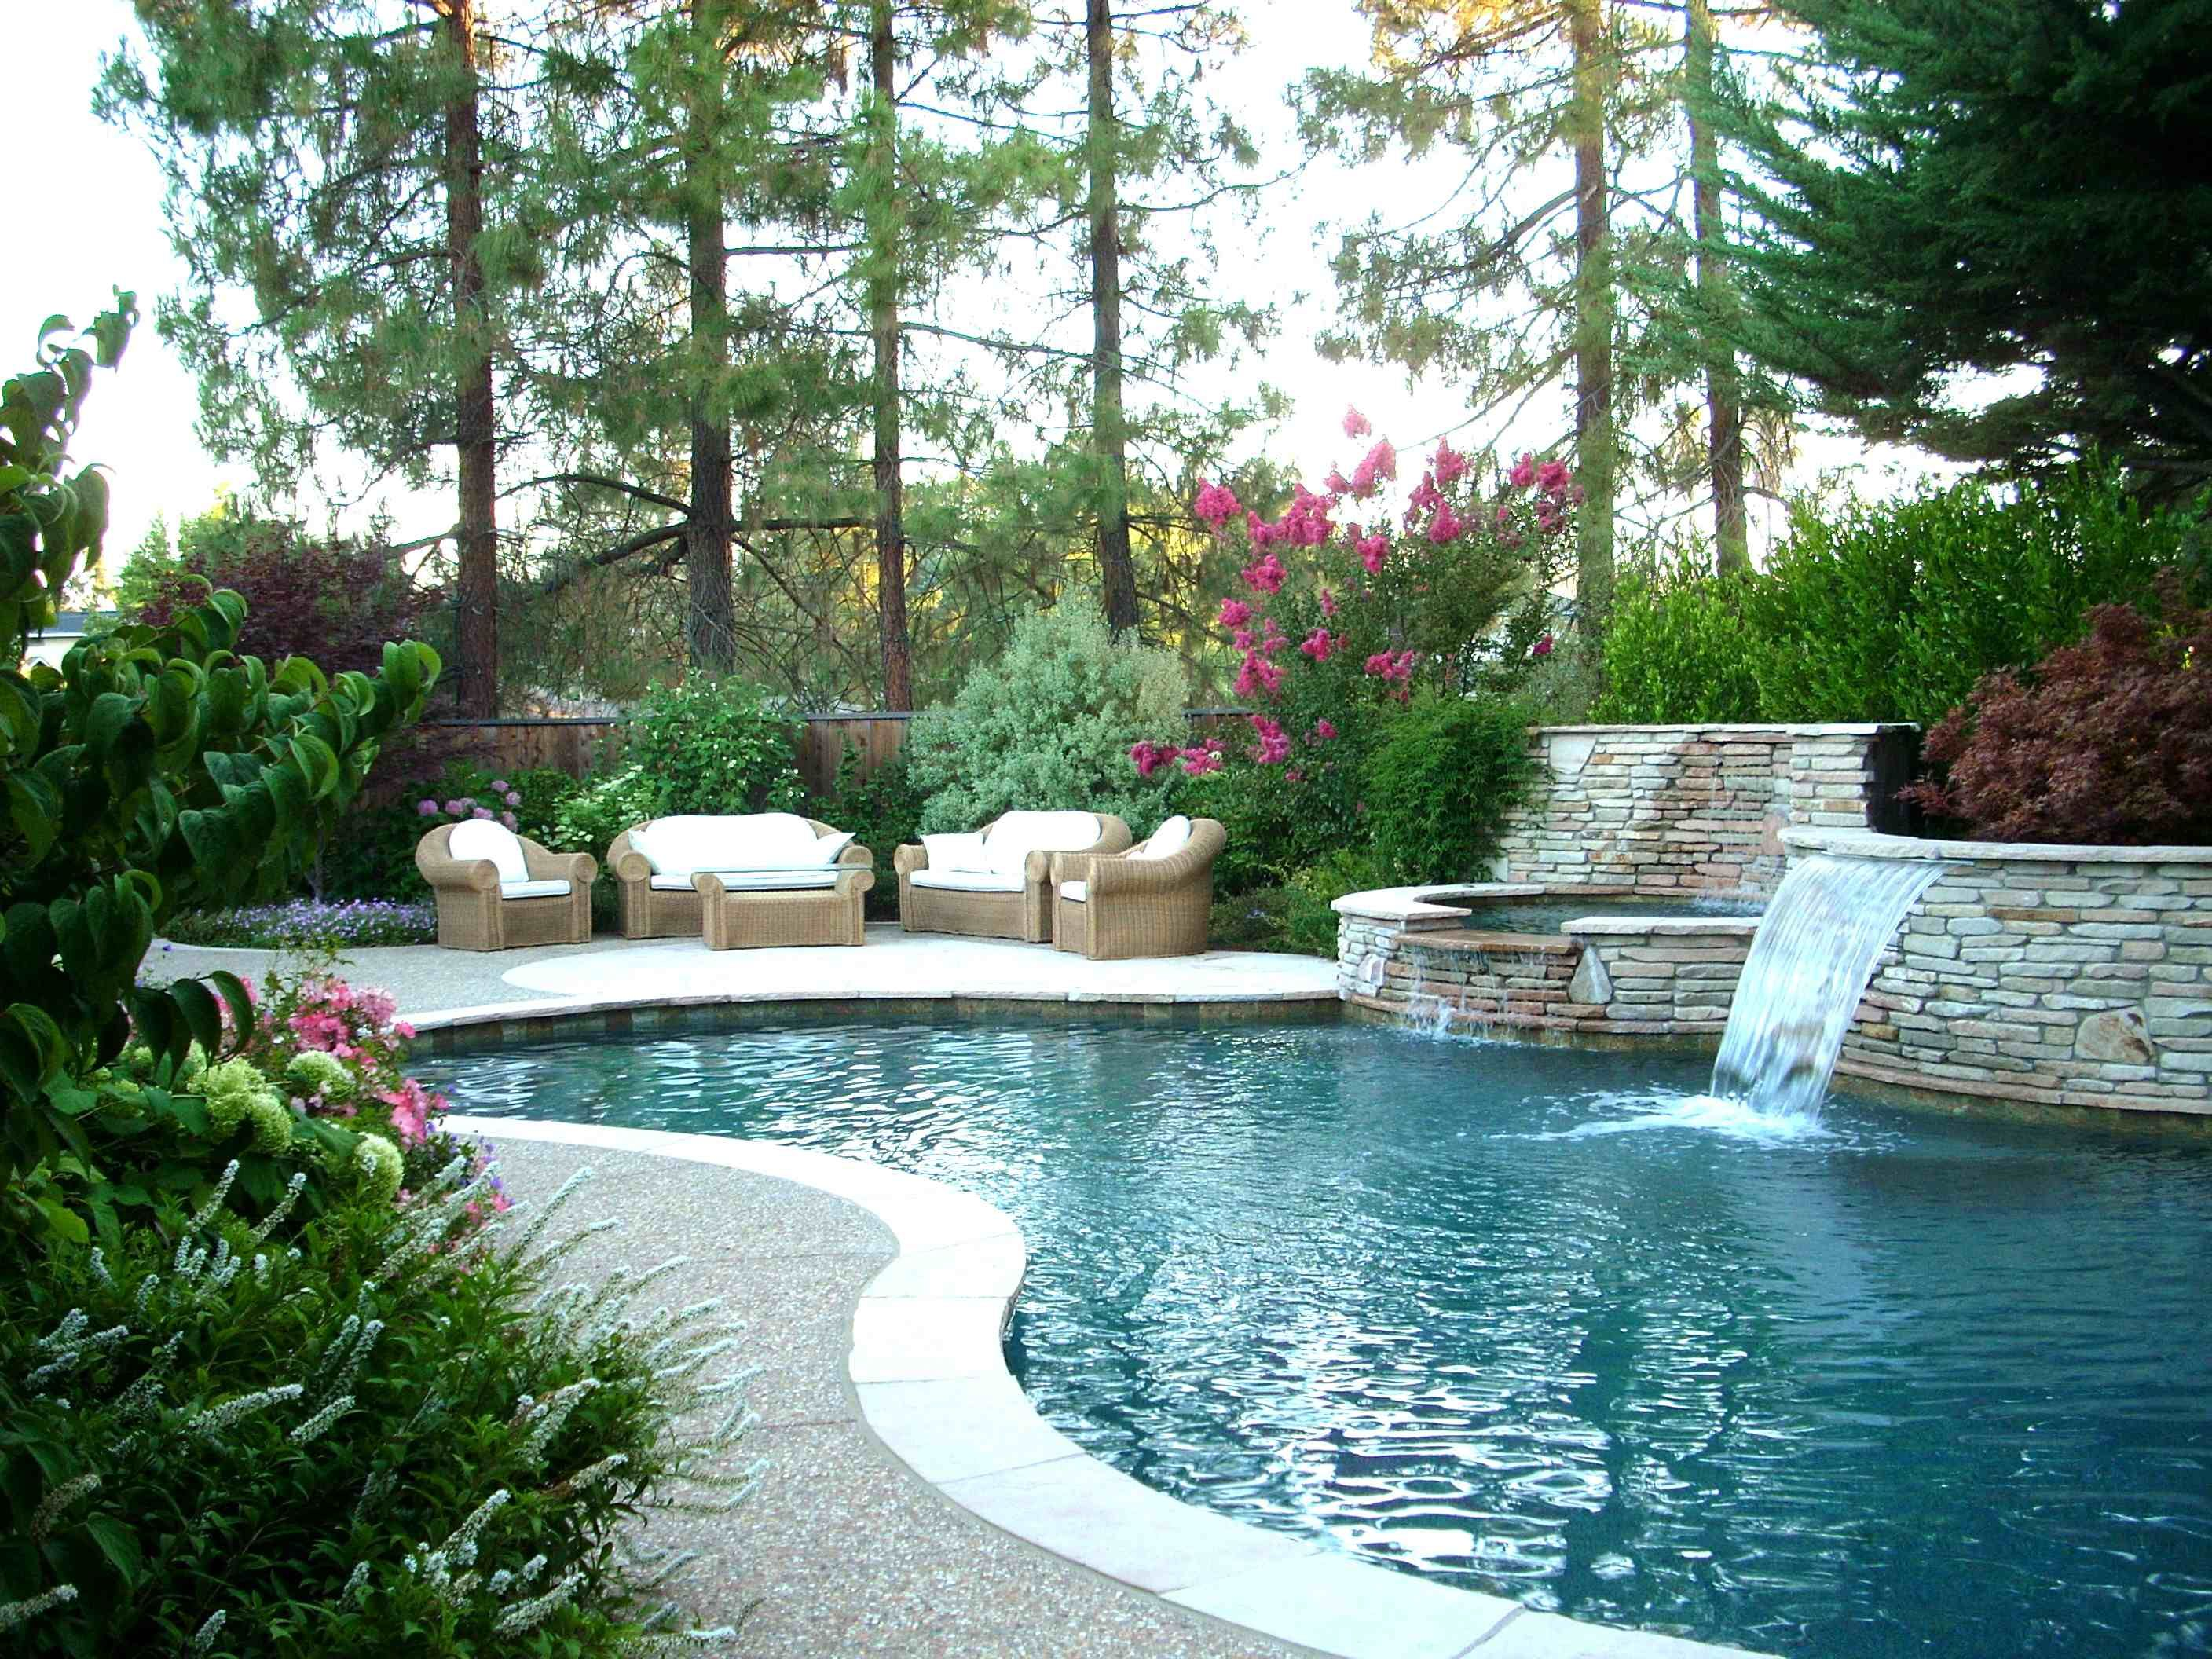 landscaped pool pictures landscape design ideas for backyard gardens in danville pleasanton - Swimming Pool Landscape Designs